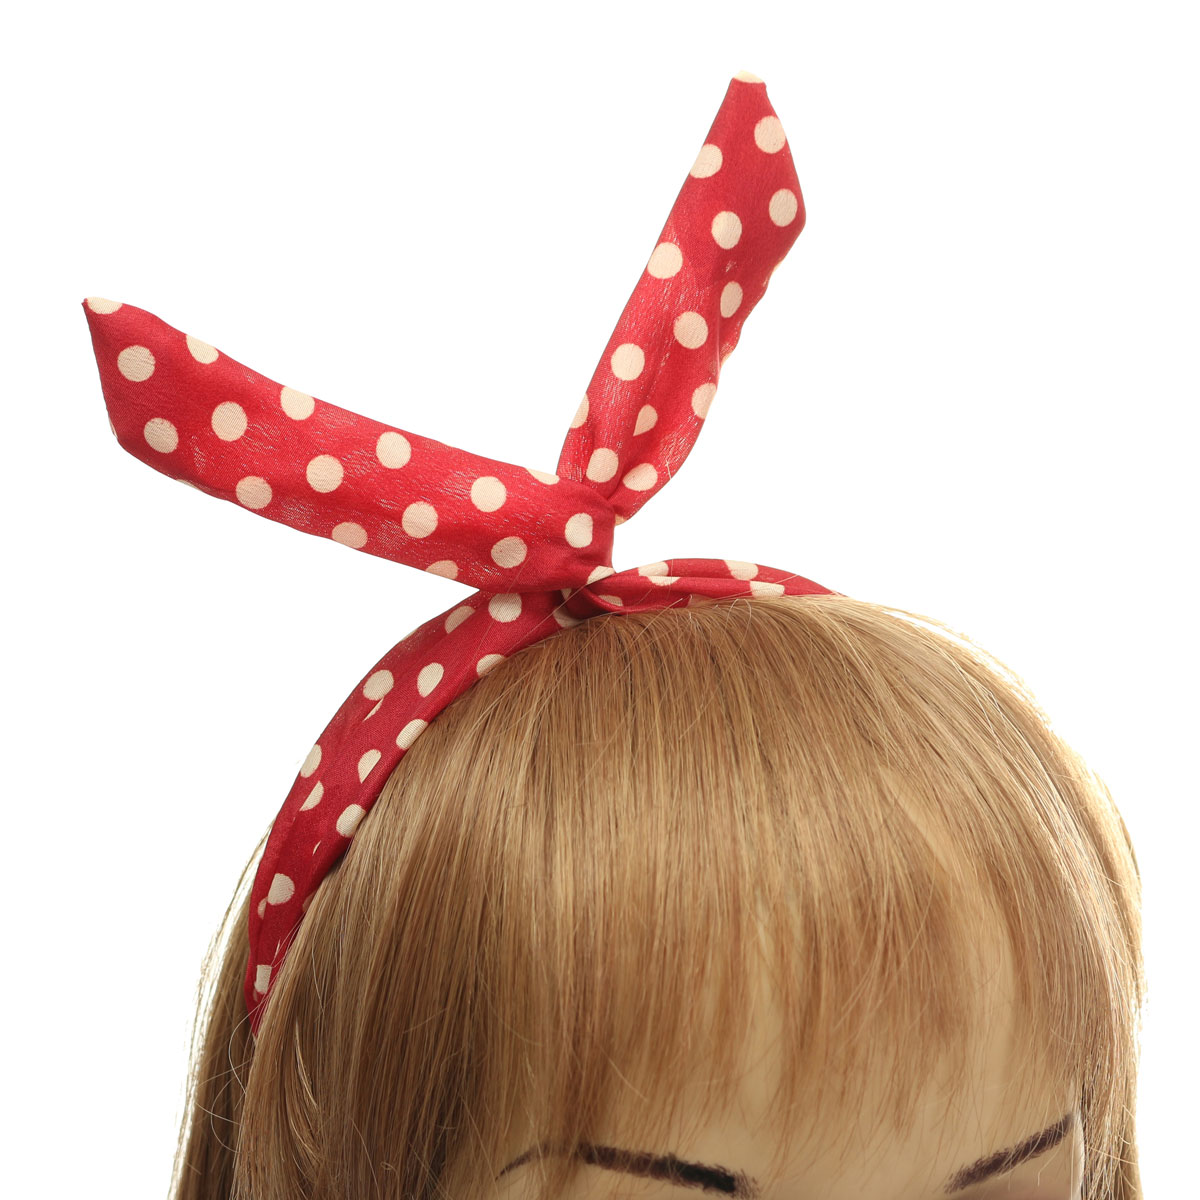 Lovely Retro Polka Dot Headband Tie Bunny Ears Girls Wired Hairband Hair Accessories